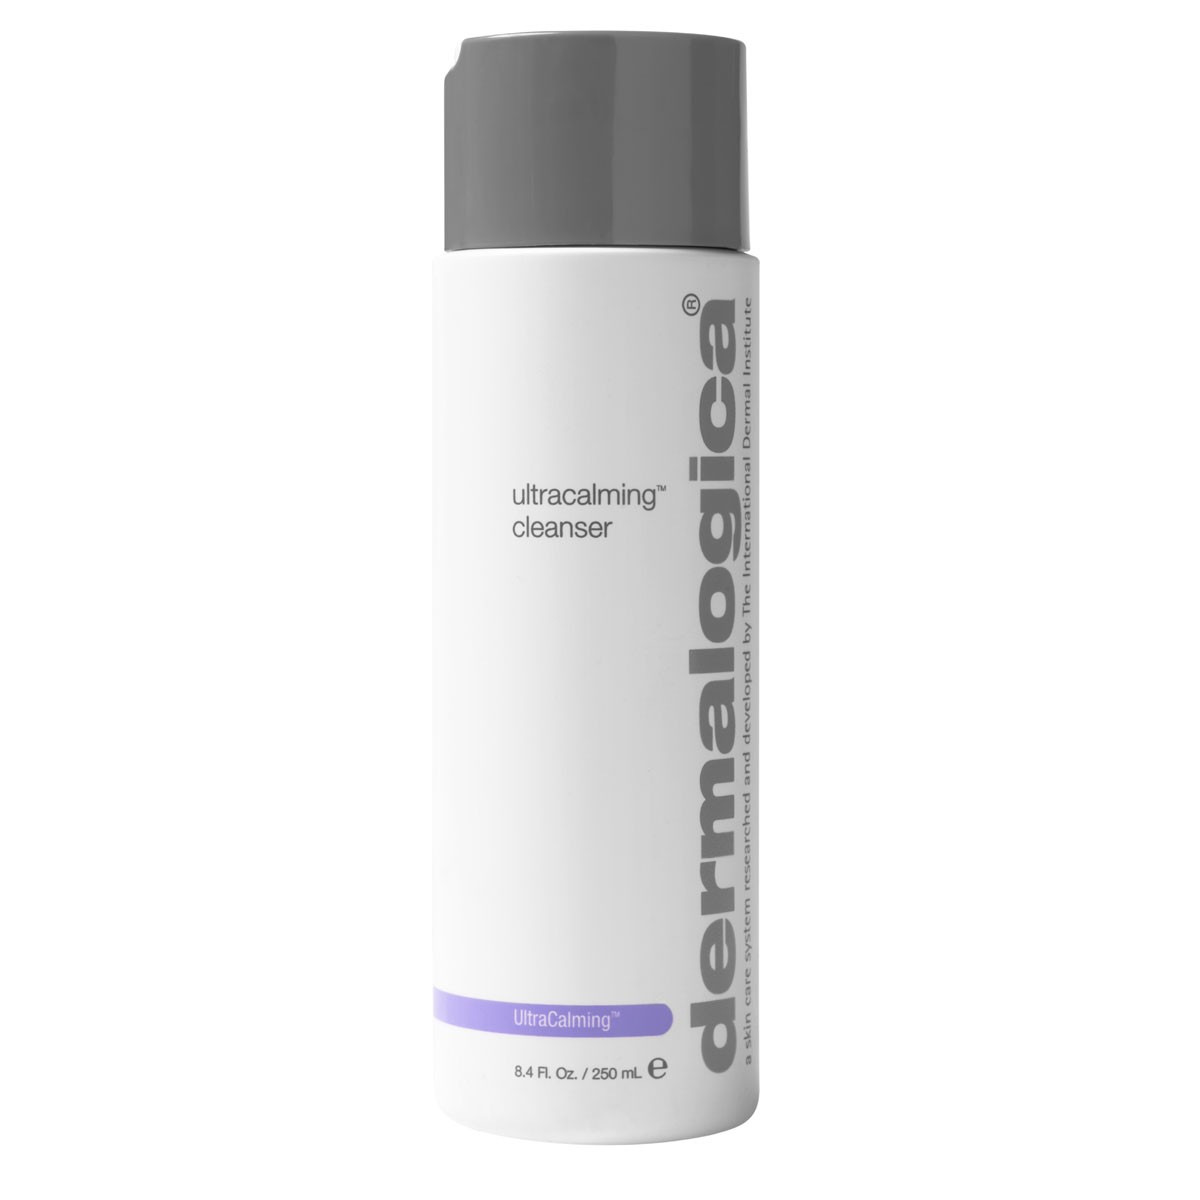 dermalogica : Ultracalming Cleanser (New Formula)